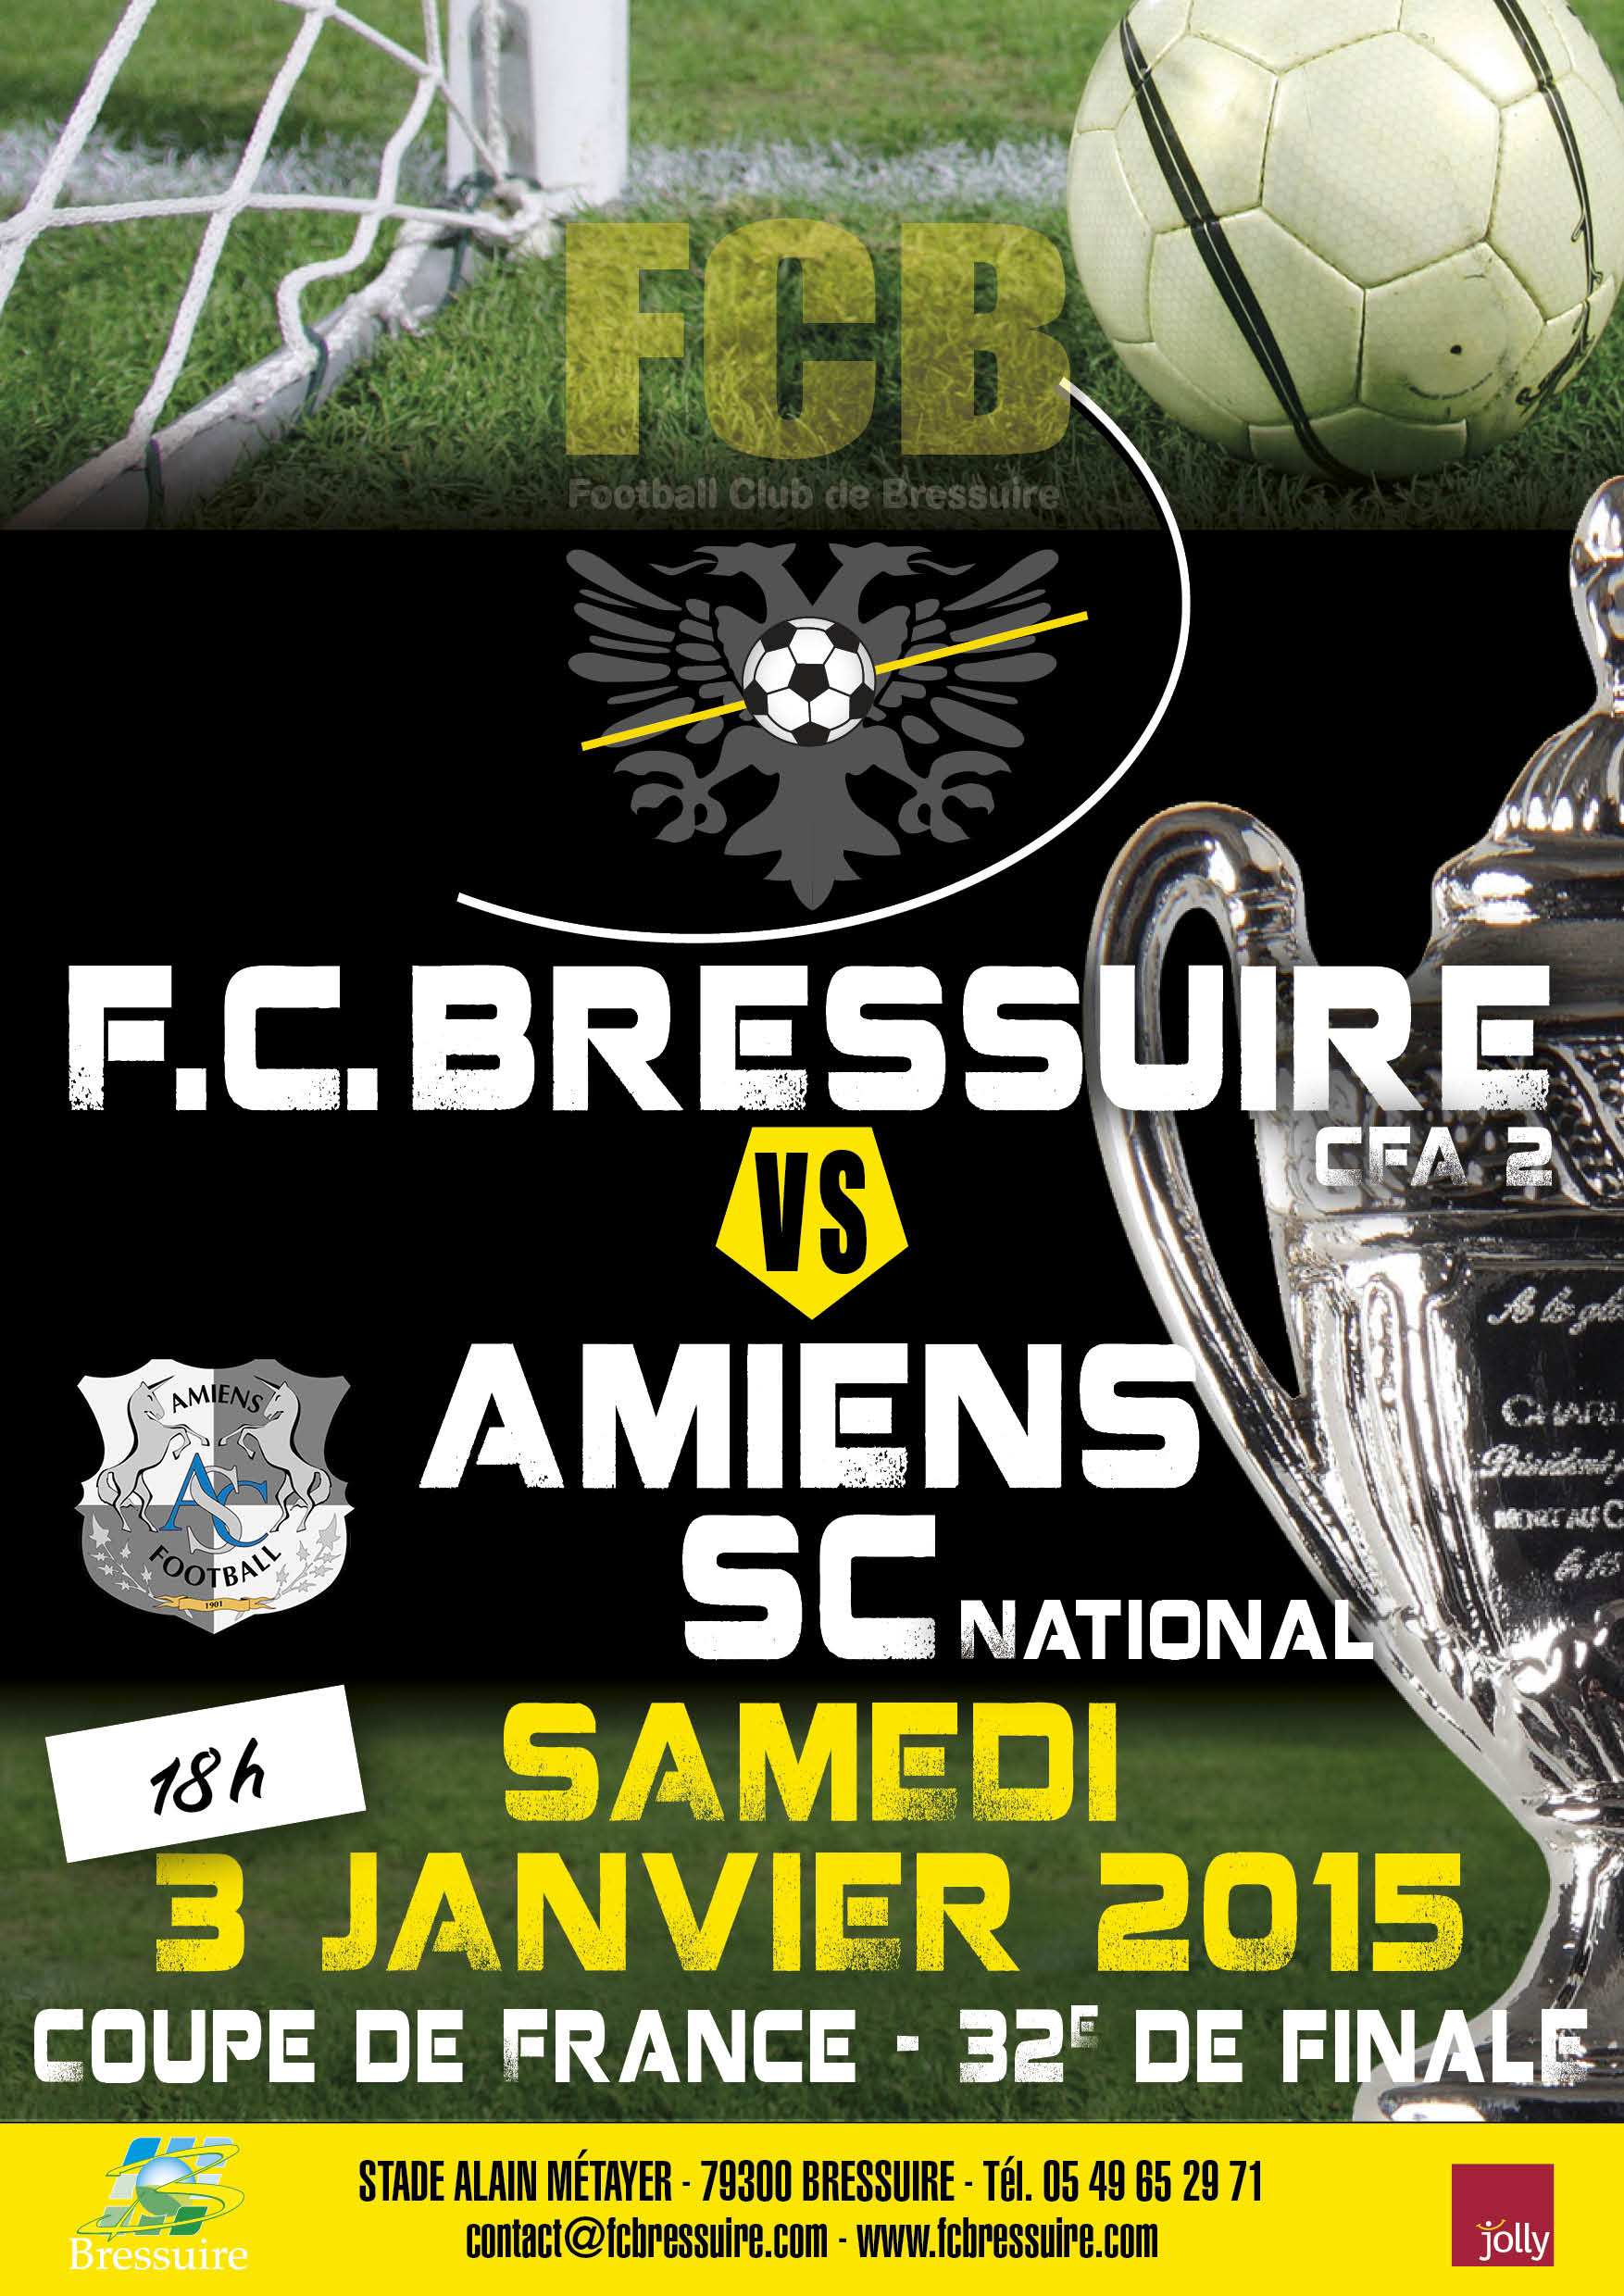 Football club de bressuire parcours cdf coupe de france - Finale coupe de france football 2015 ...